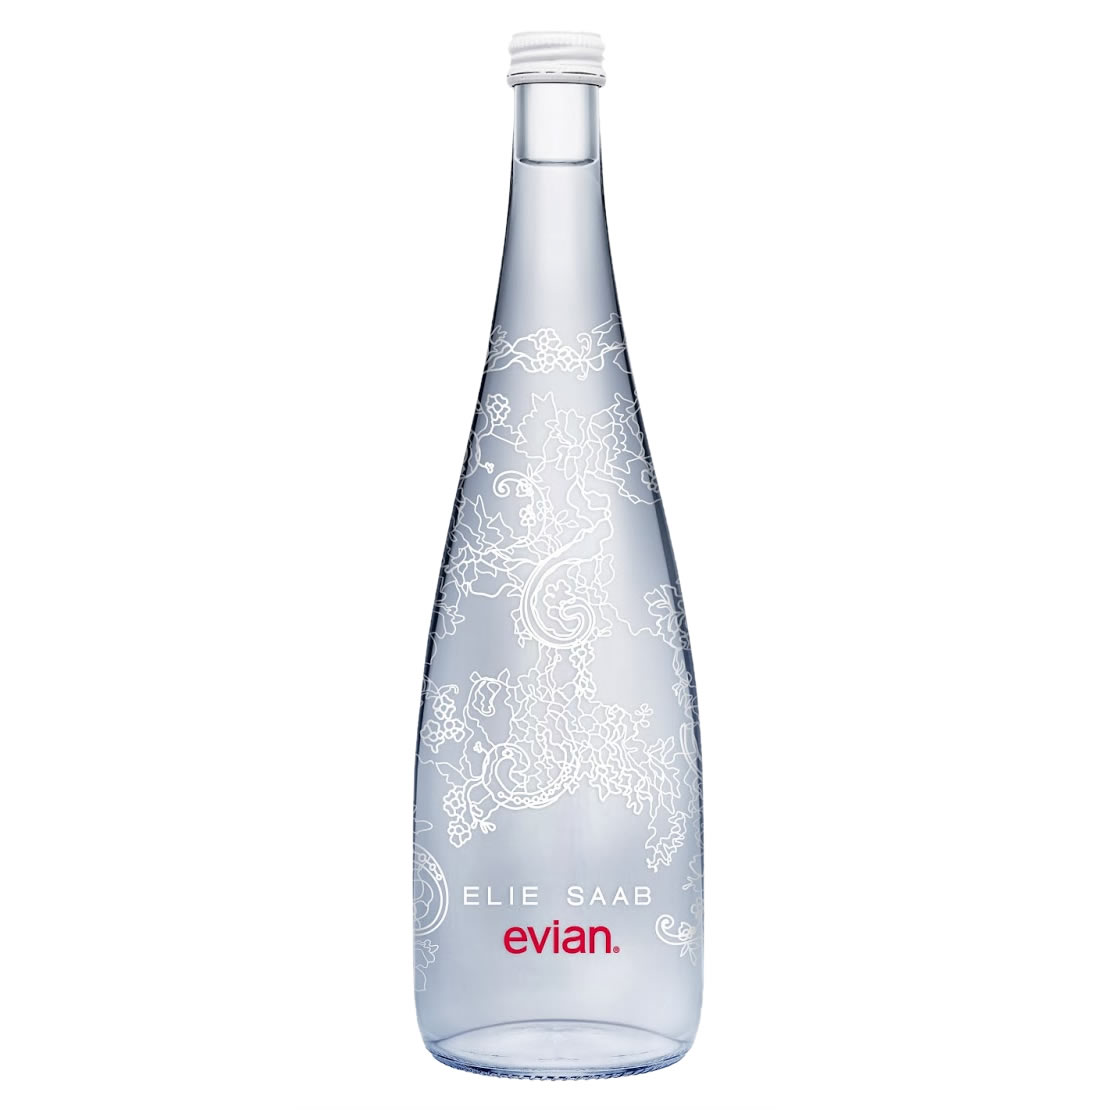 Image of Evian Limited Edition Elie Saab Sparkling Water 750ml